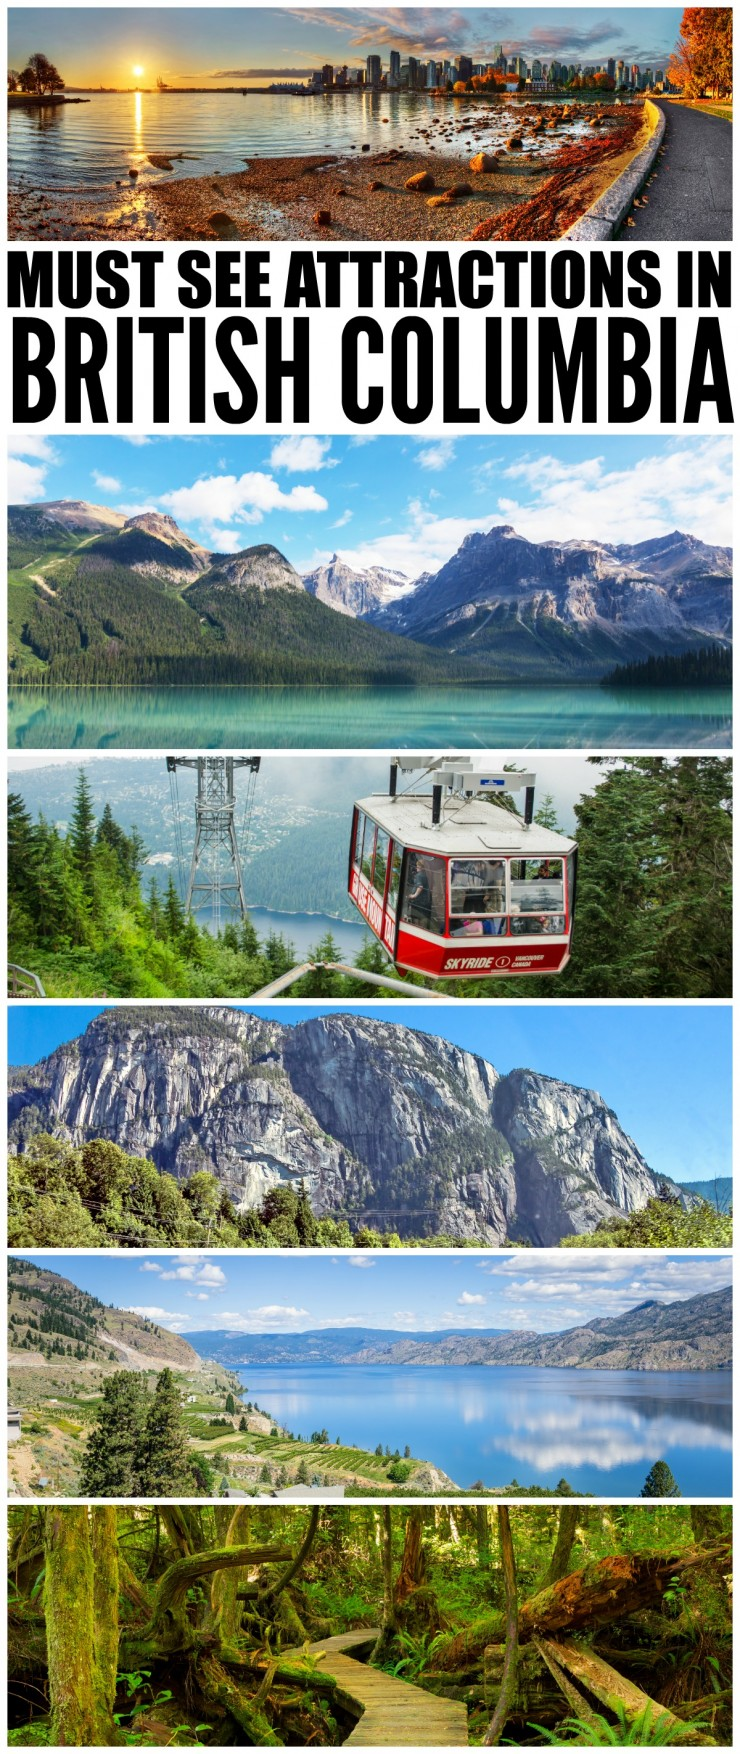 British Columbia is very easily one of the most amazing and beautiful places on earth. With hundreds of must visit landmarks and attractions spread across the province, B.C offers a year-round history lesson, a variety of different activities and exciting entertainment.